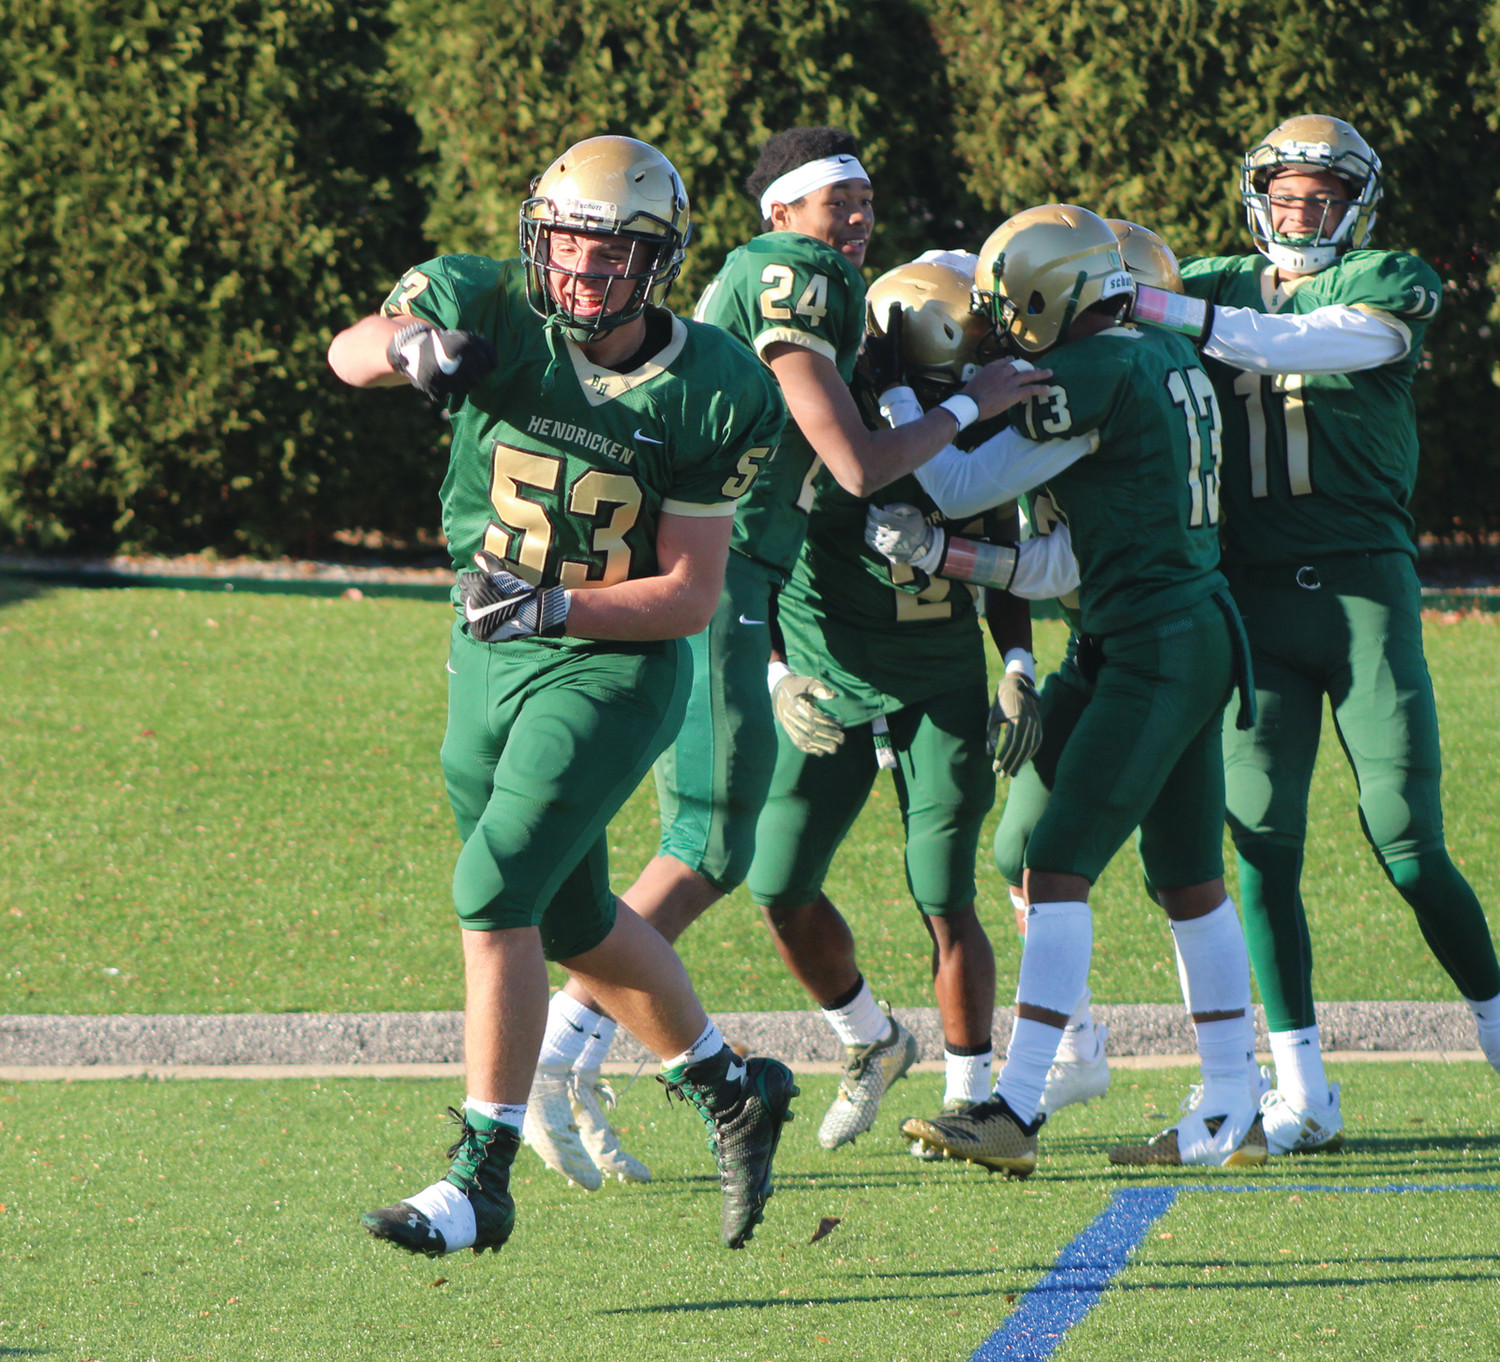 CLOSING THE DOOR: Bishop Hendricken players celebrate after a fourth-quarter touchdown.